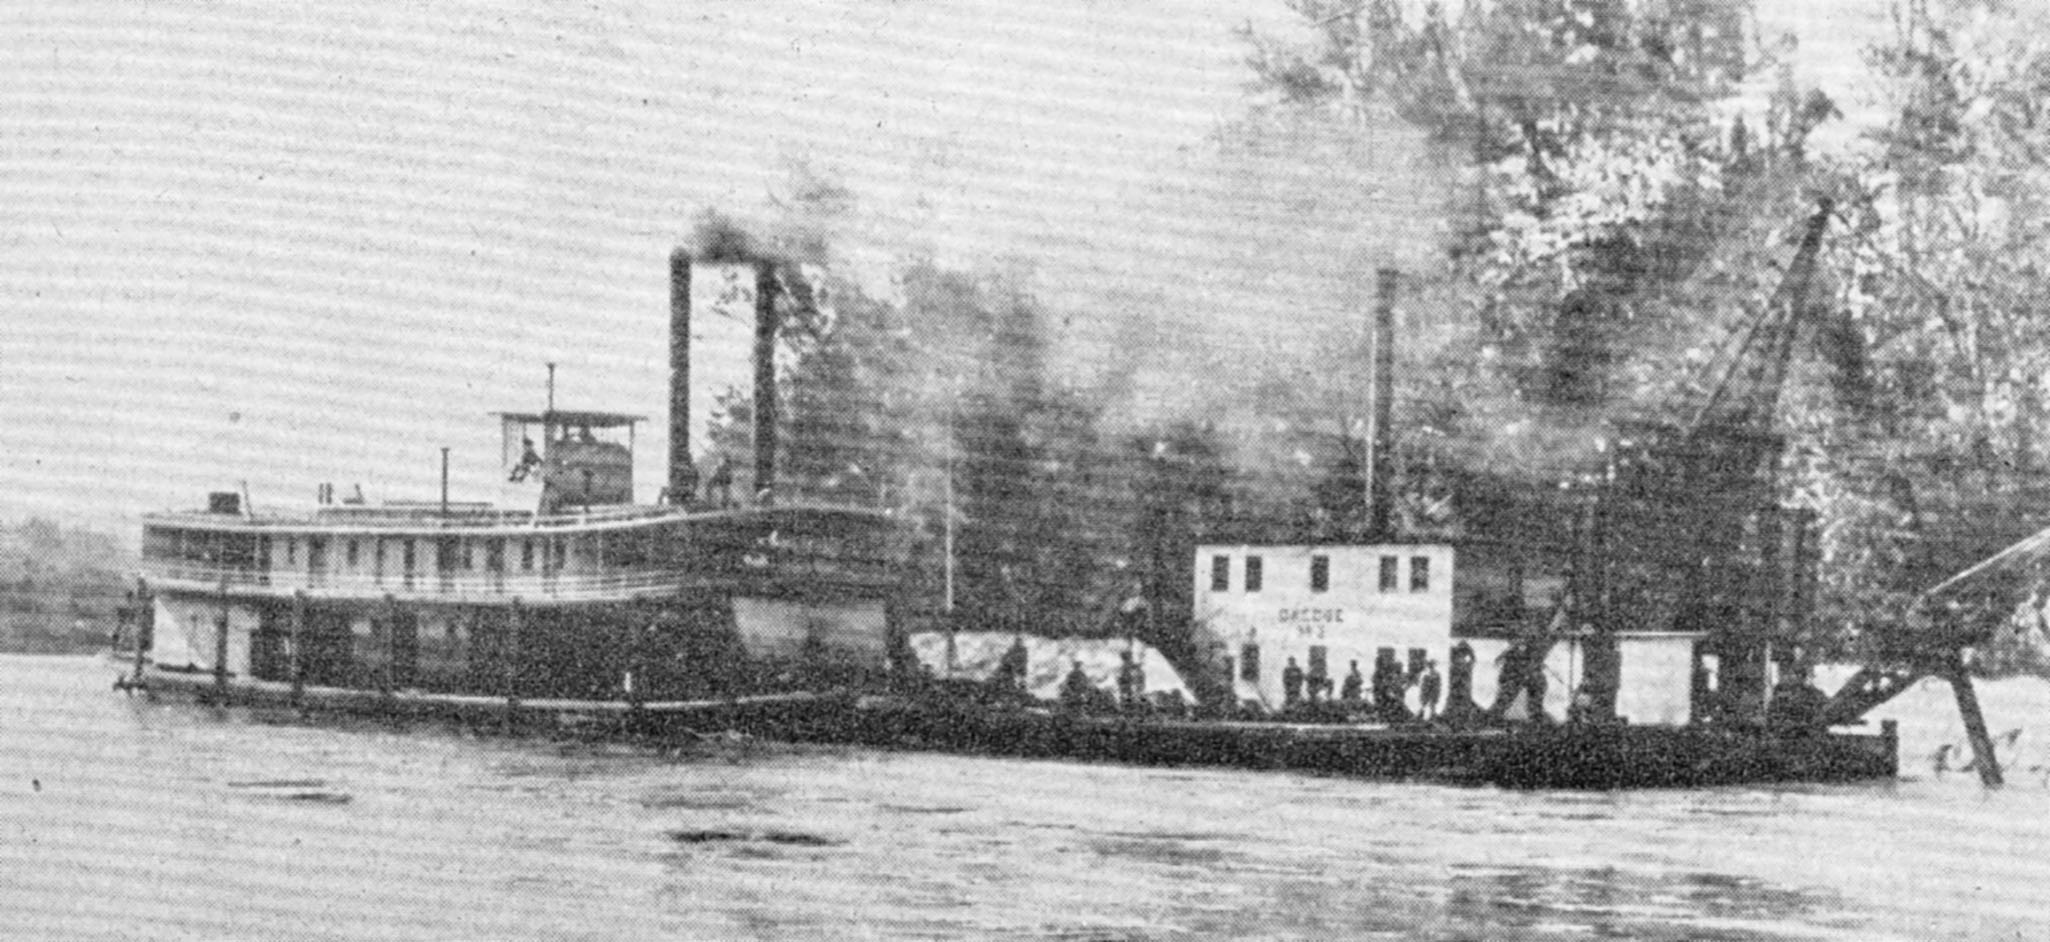 The Leota towing a dredge on the Coosa River.